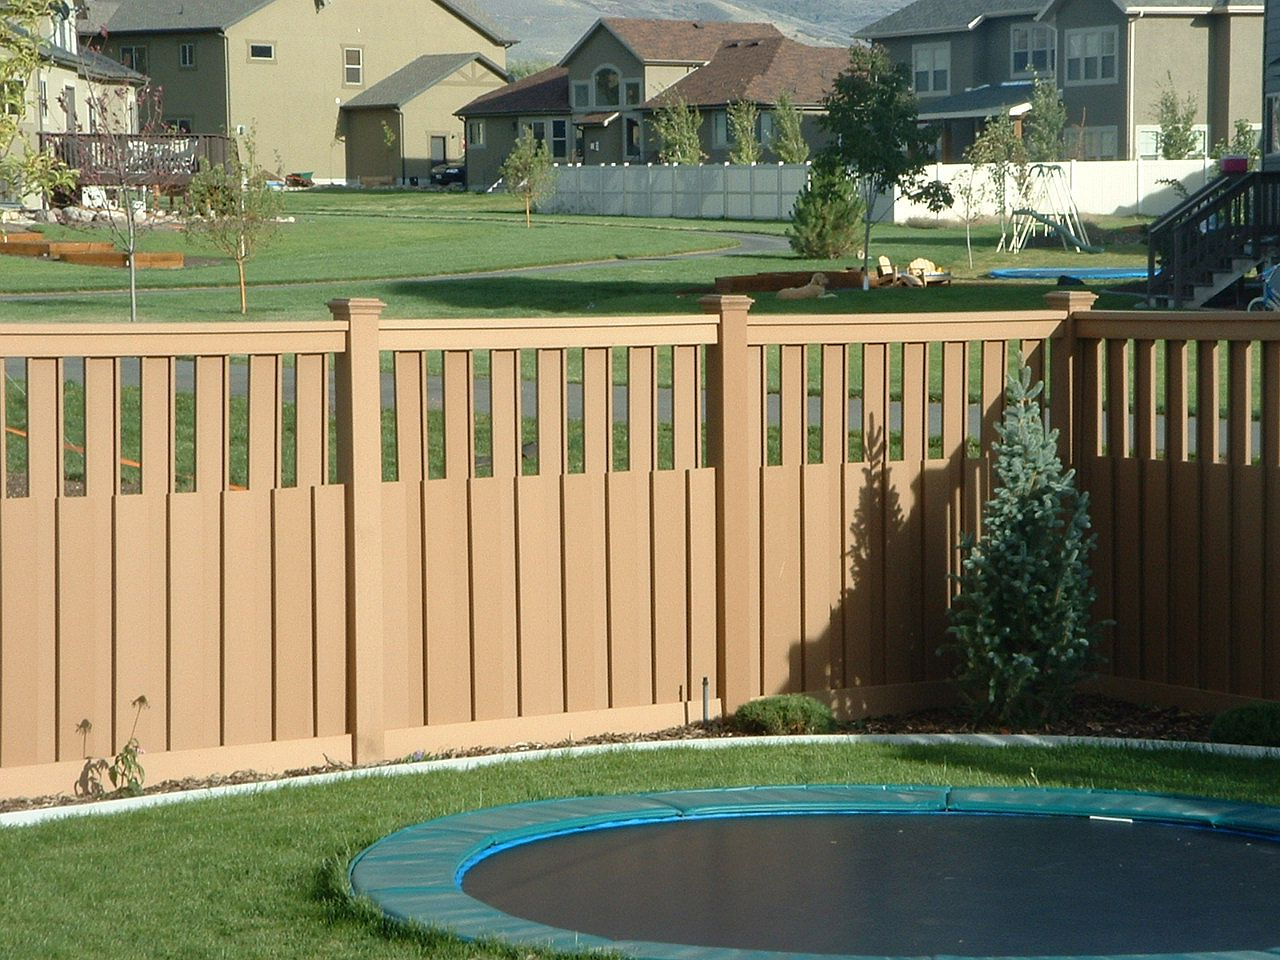 Ideas Backyard Fence Outdoor Decorations Easy Repair with 12 Awesome Concepts of How to Makeover Small Backyard Fence Ideas